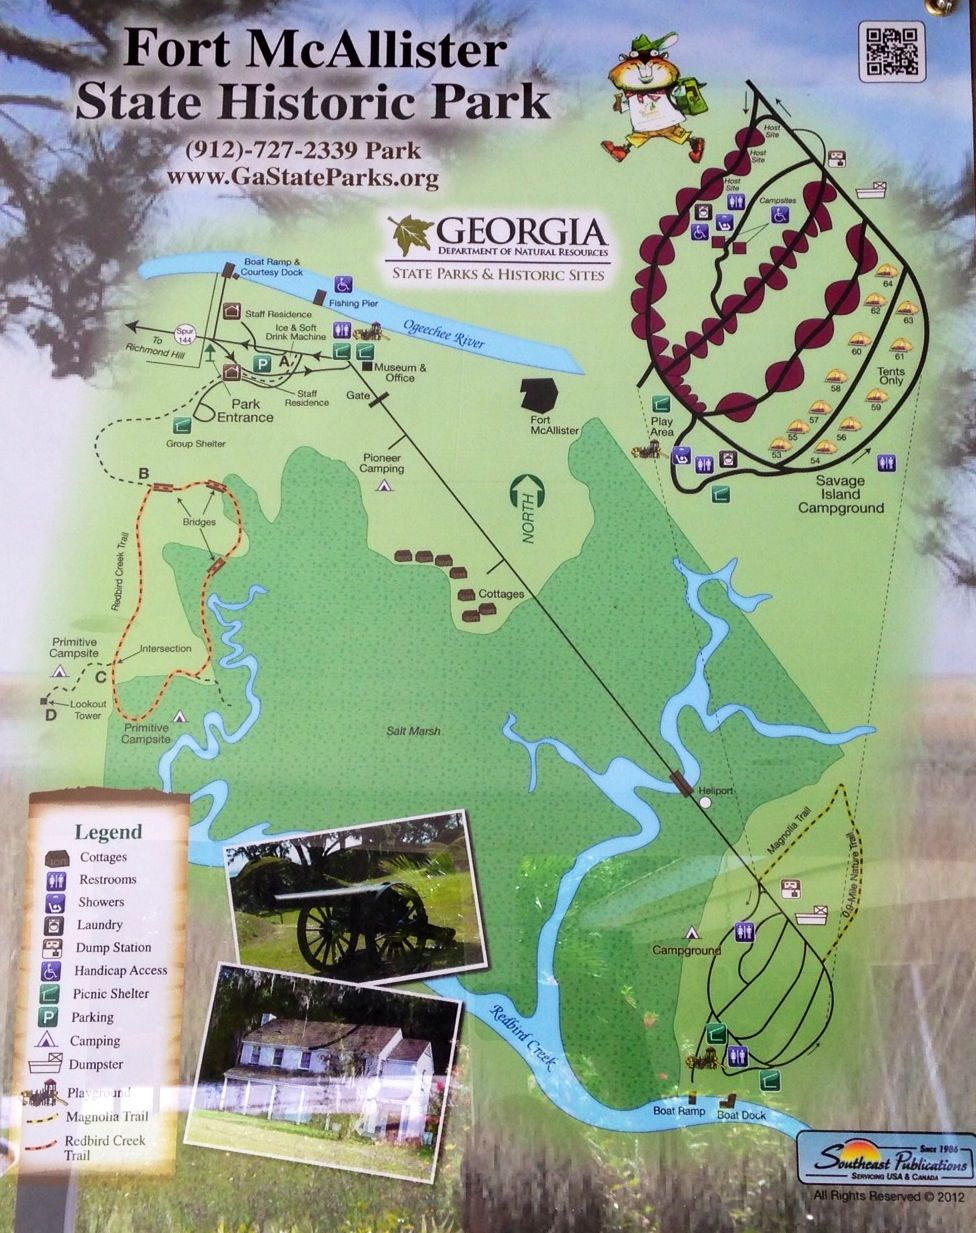 Map of Fort McAllister State Historic Park